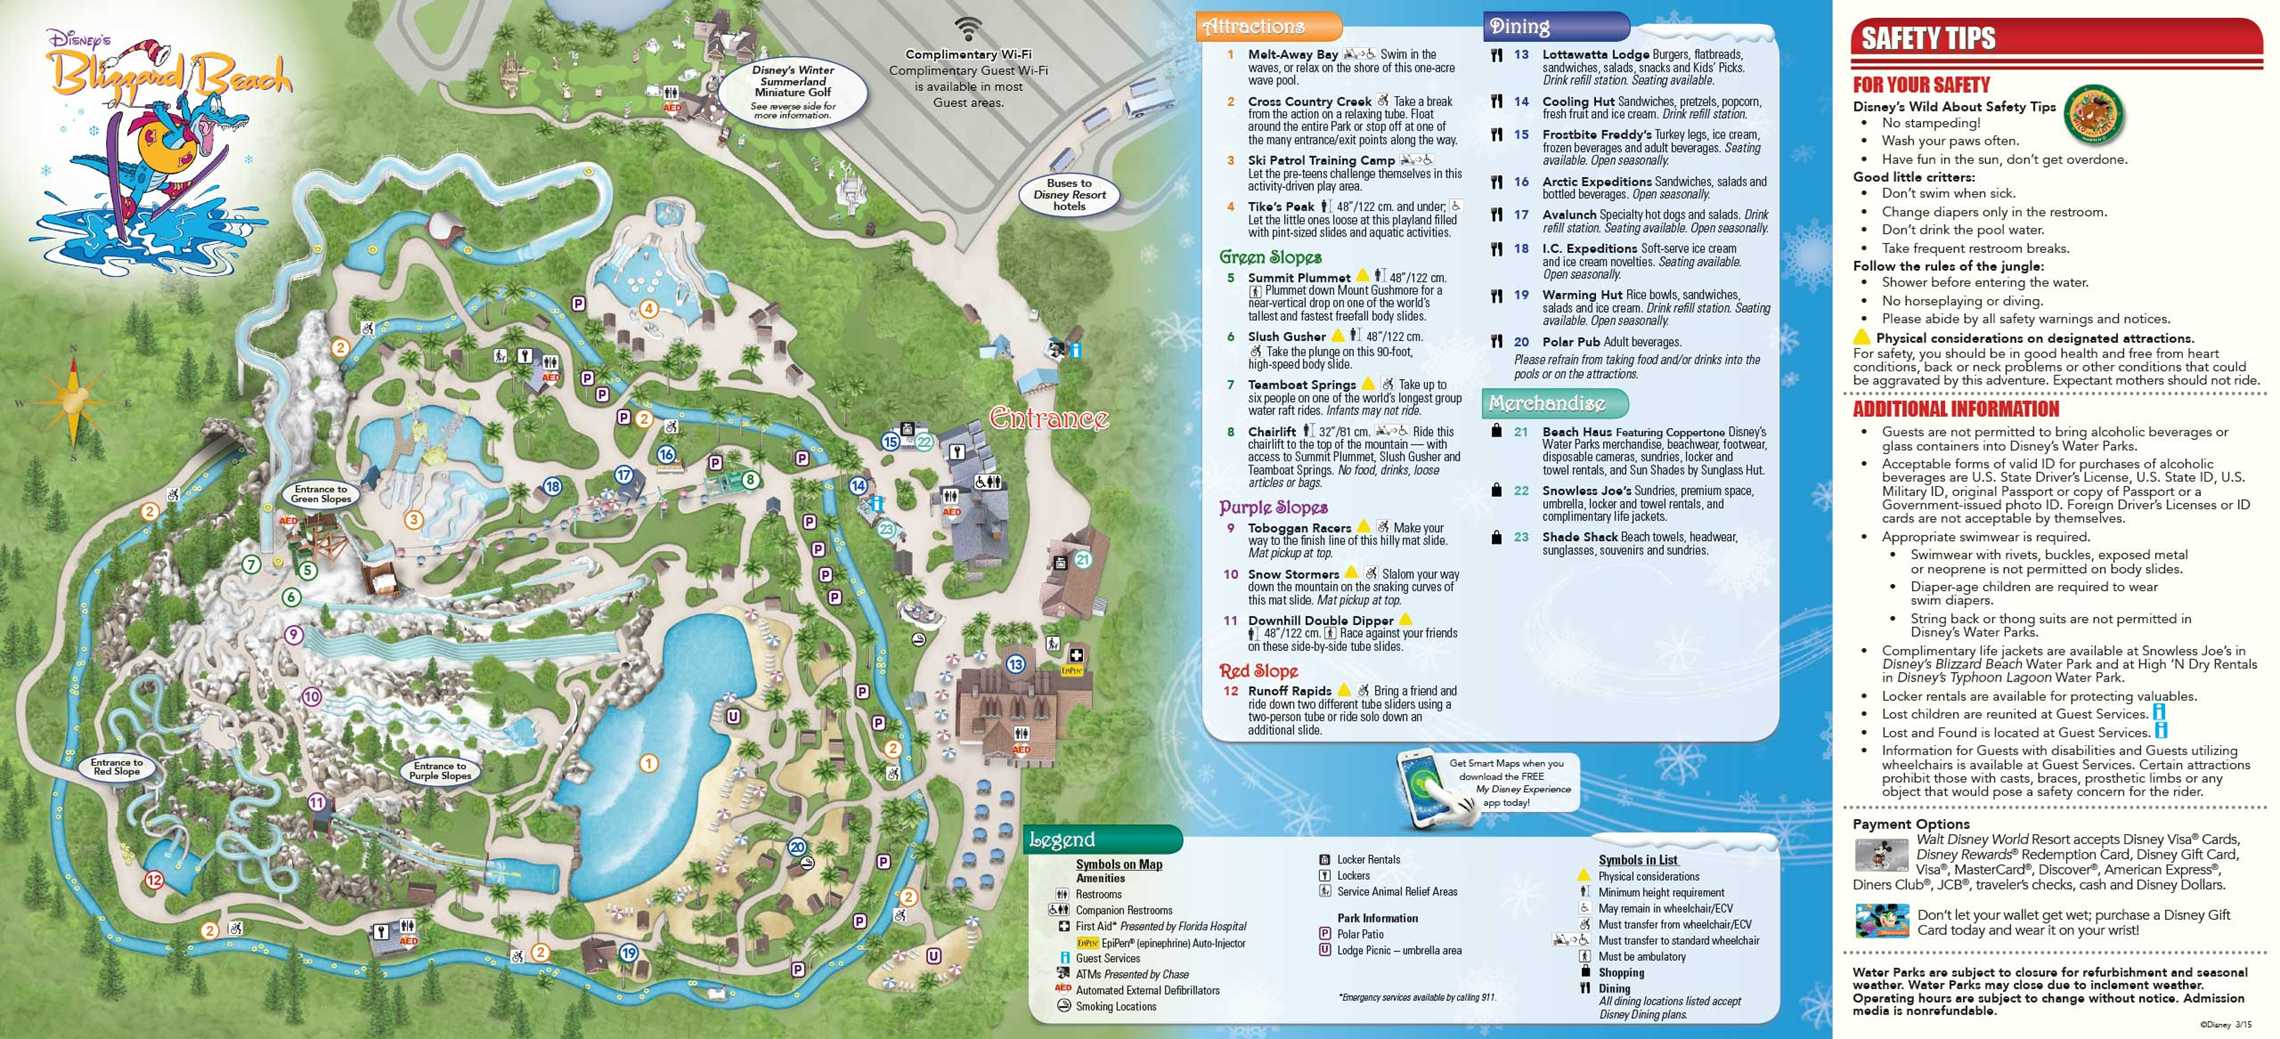 Water Park Guide Map May 2015 Blizzard Beach